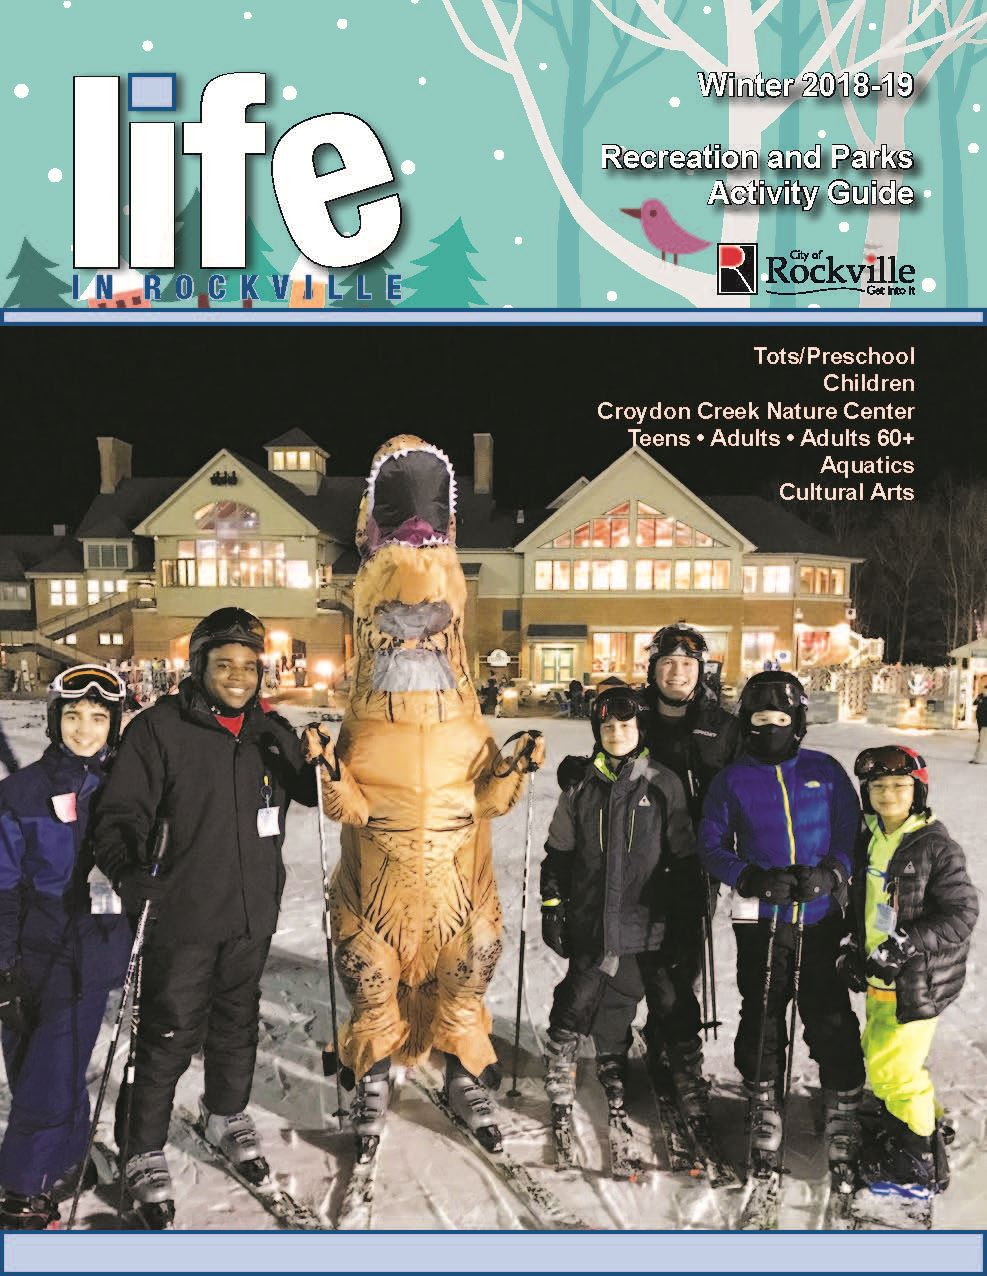 Winter recreation guide 2019 cover